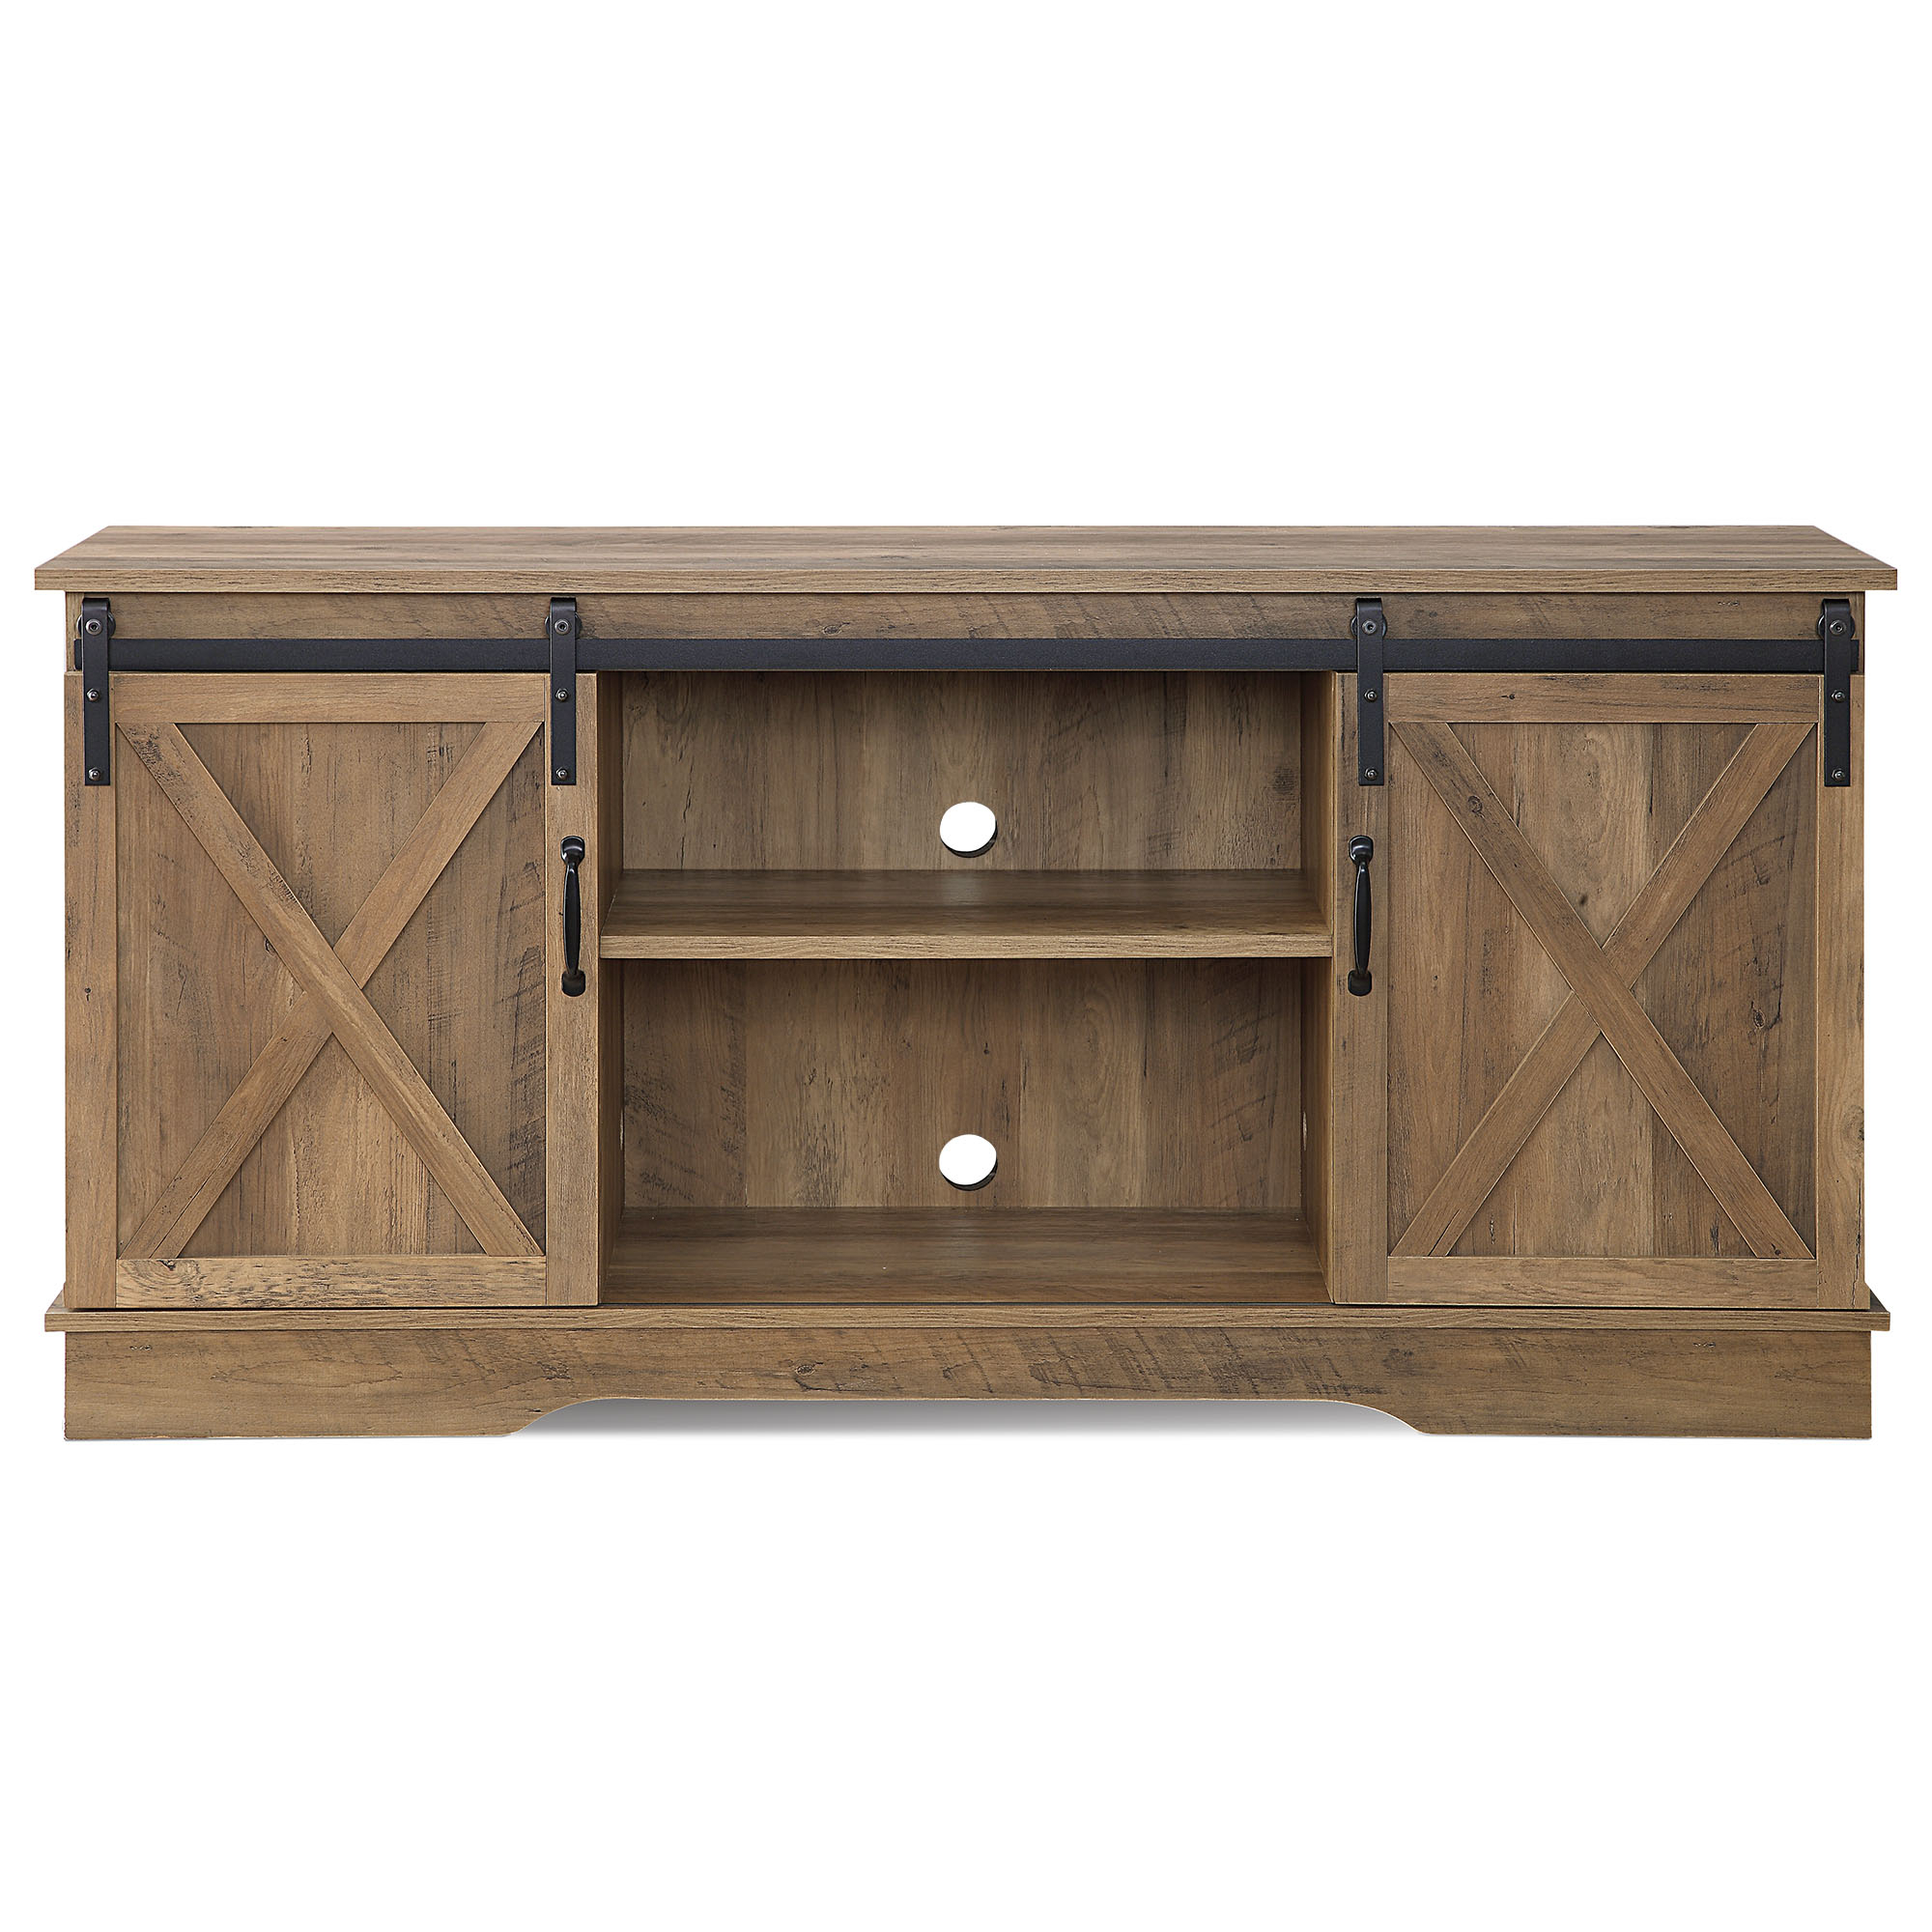 """58""""farmhouse Tv Stand W/sliding Door Console Table For Tvs In Tv Stands With Sliding Barn Door Console In Rustic Oak (View 4 of 20)"""